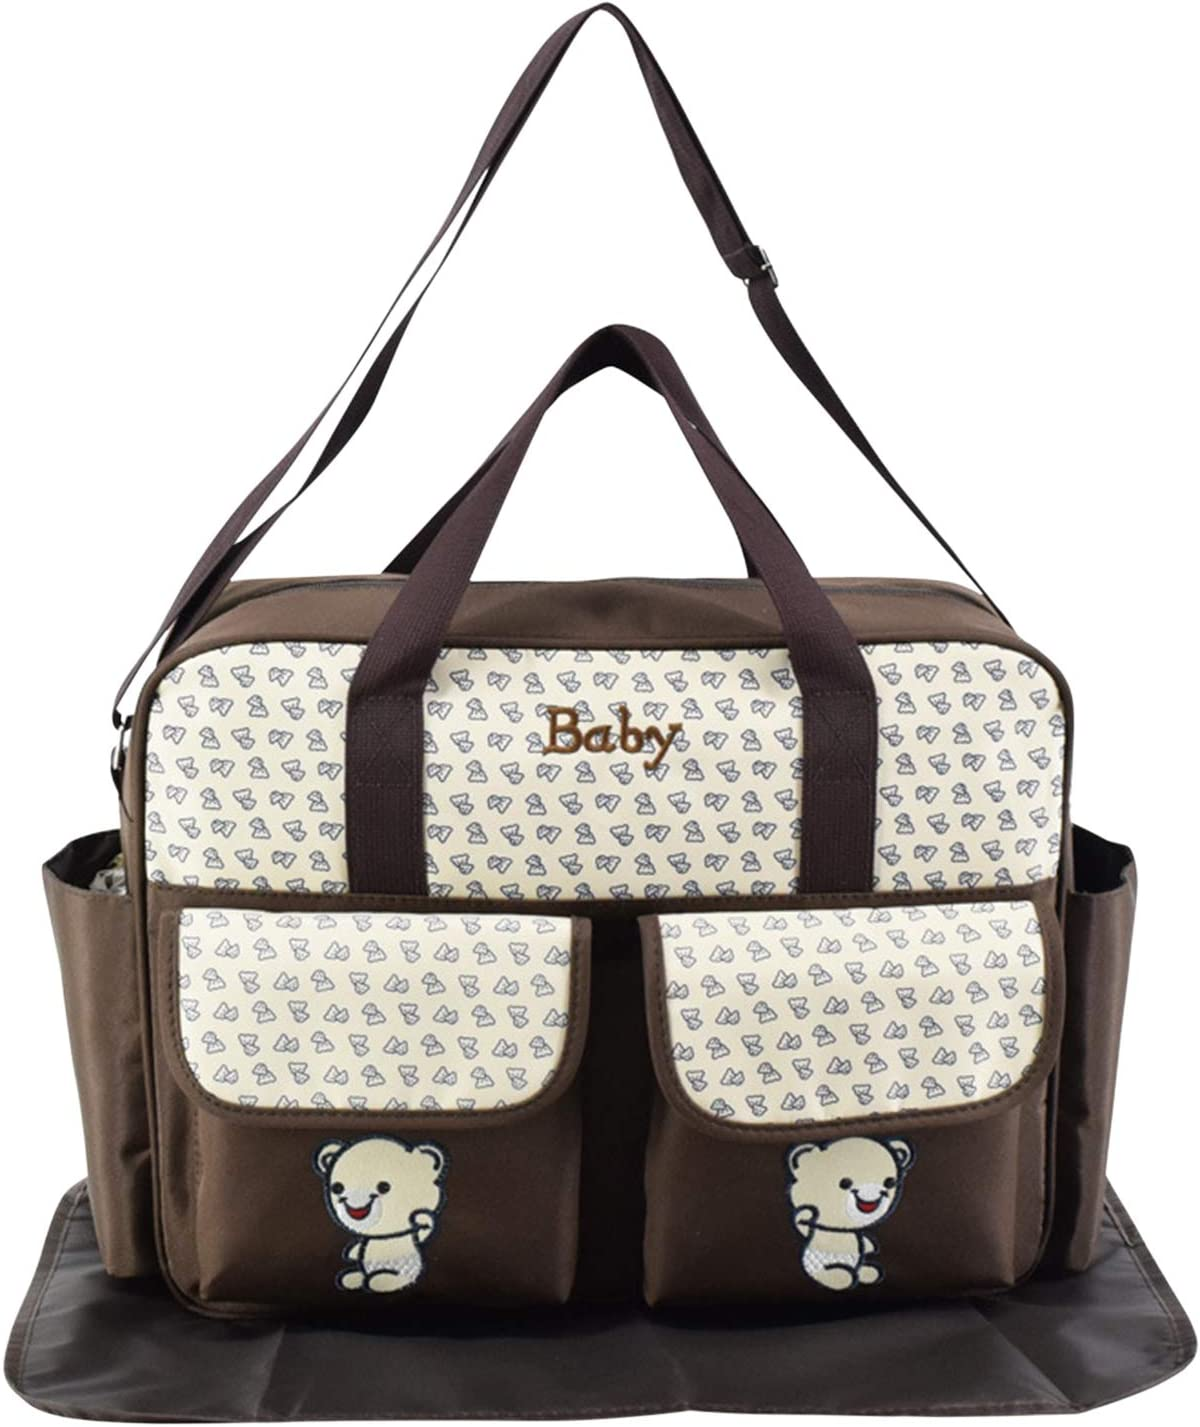 Boodtag Cute Nappy Changing Bag Handbags for Mummy Animal Print Large Capacity Baby Diaper Totes Rose